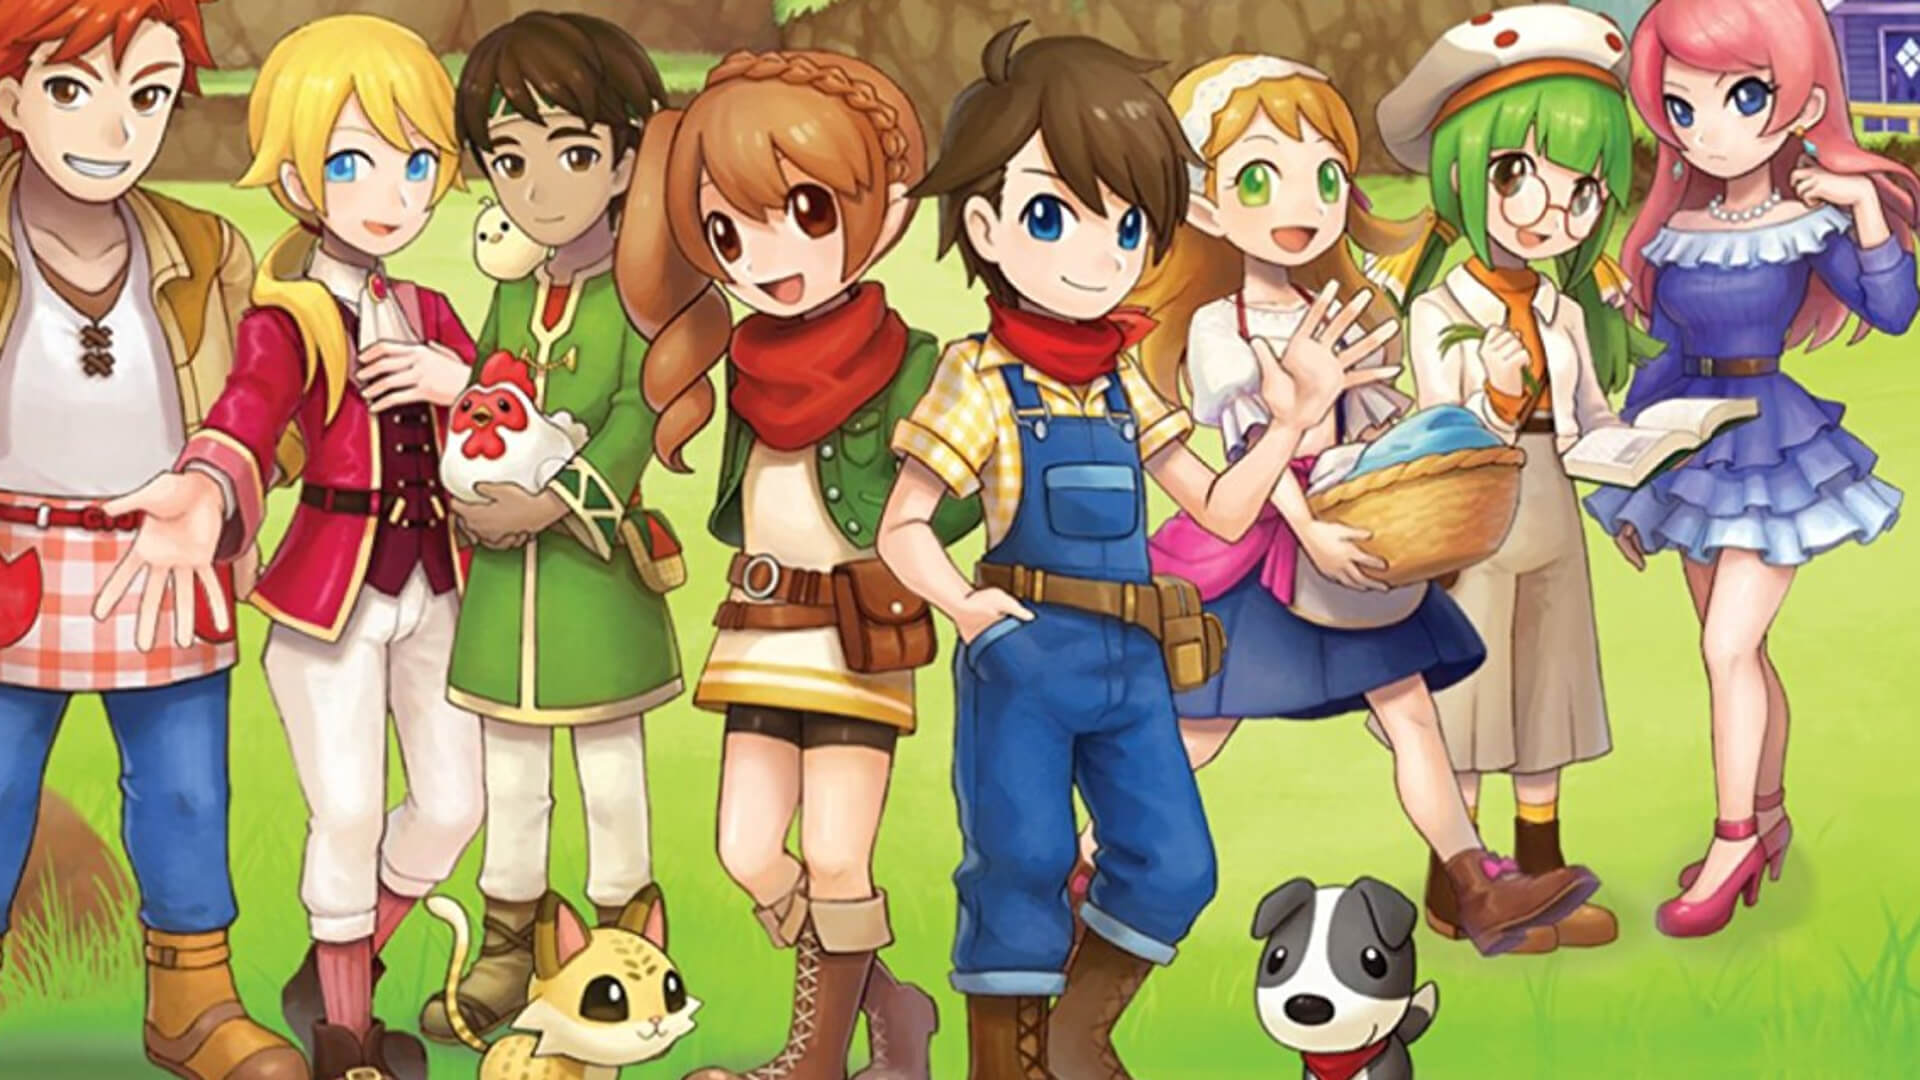 Harvest Moon: Skytree Village Masthead